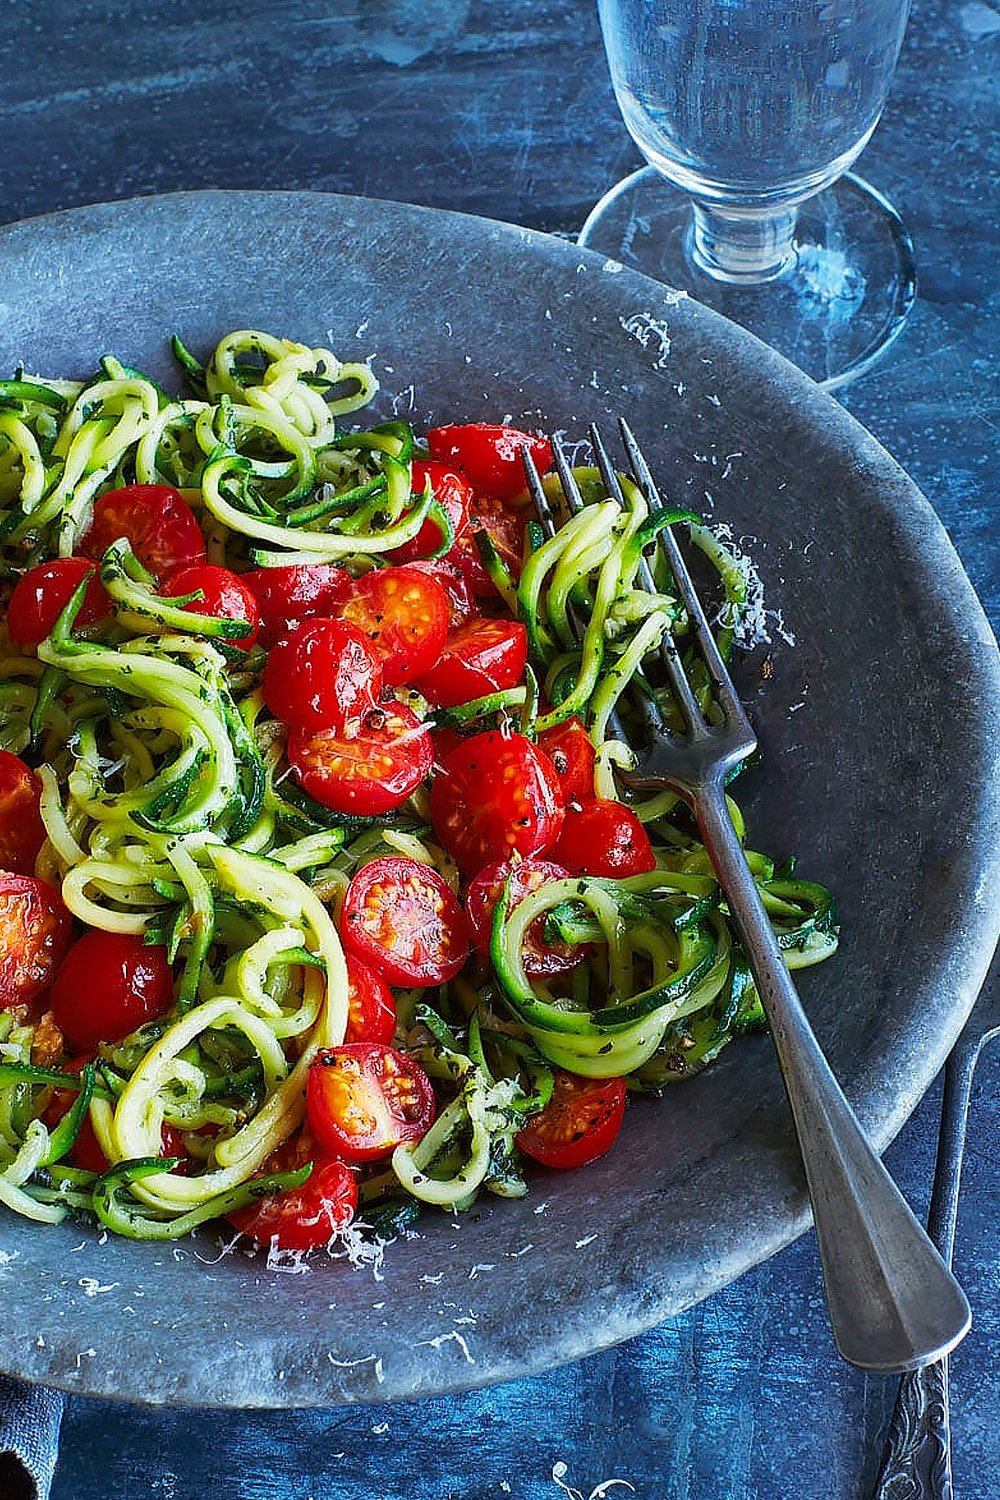 Annabel Karmel's courgette spaghetti, served into a bowl with a fork and a glass of water. Close up